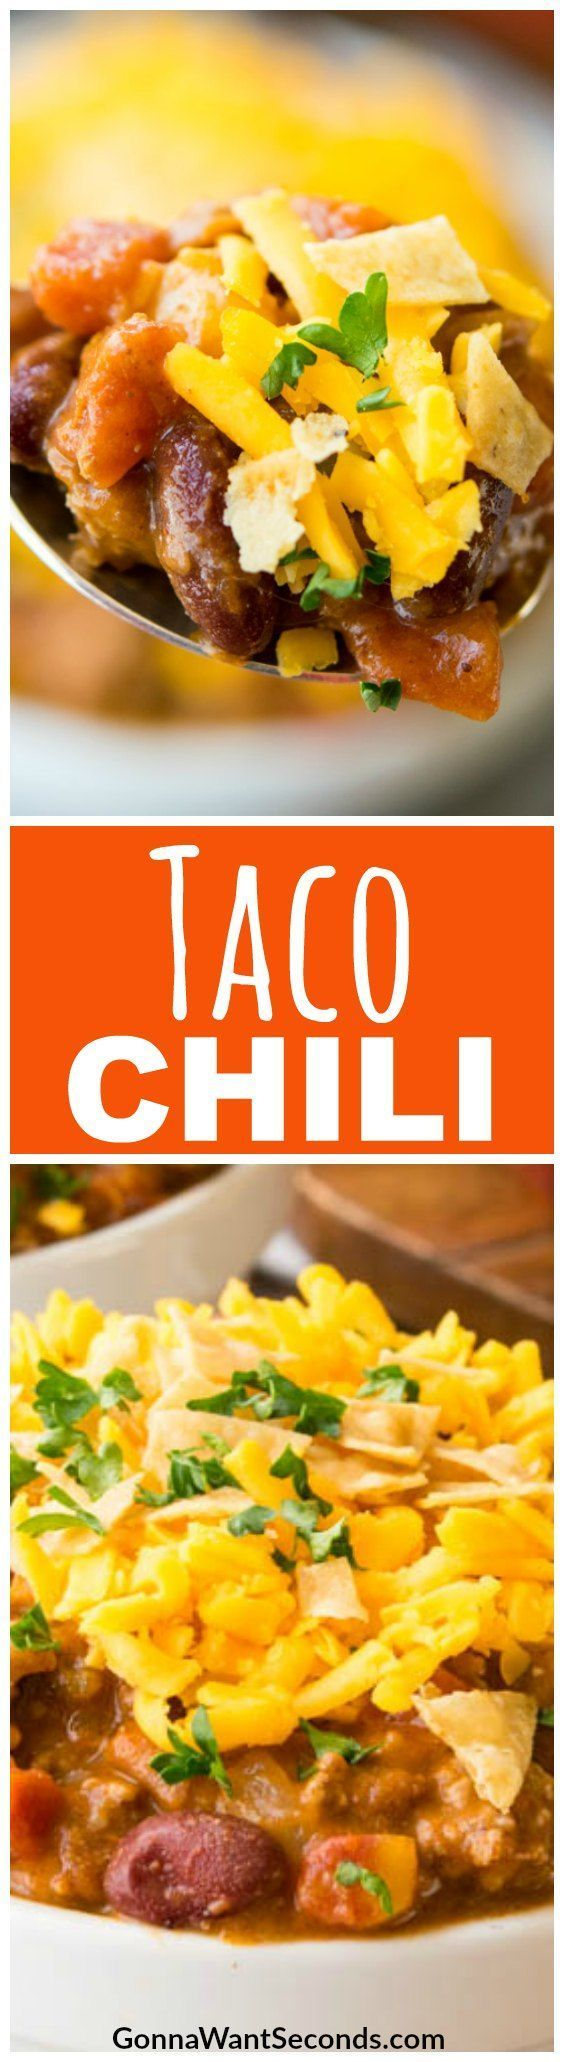 Taco Chili – it's the chili that the whole family will love! This warm and chunky chili, seasoned like your favorite taco filling, is a one-pot wonder and guaranteed dinner favorite. #Taco #Chili #Beef #Stovetop #Soup #Best #Simple #BlackBeans #Families #SeasoningMixes #EnchiladaSauce #ComfortFood #Crockpot #SlowCooker #InstantPot #Chicken #Turkey #TortillaChips #TacoSeasoning #Hominy #ChiliBeans